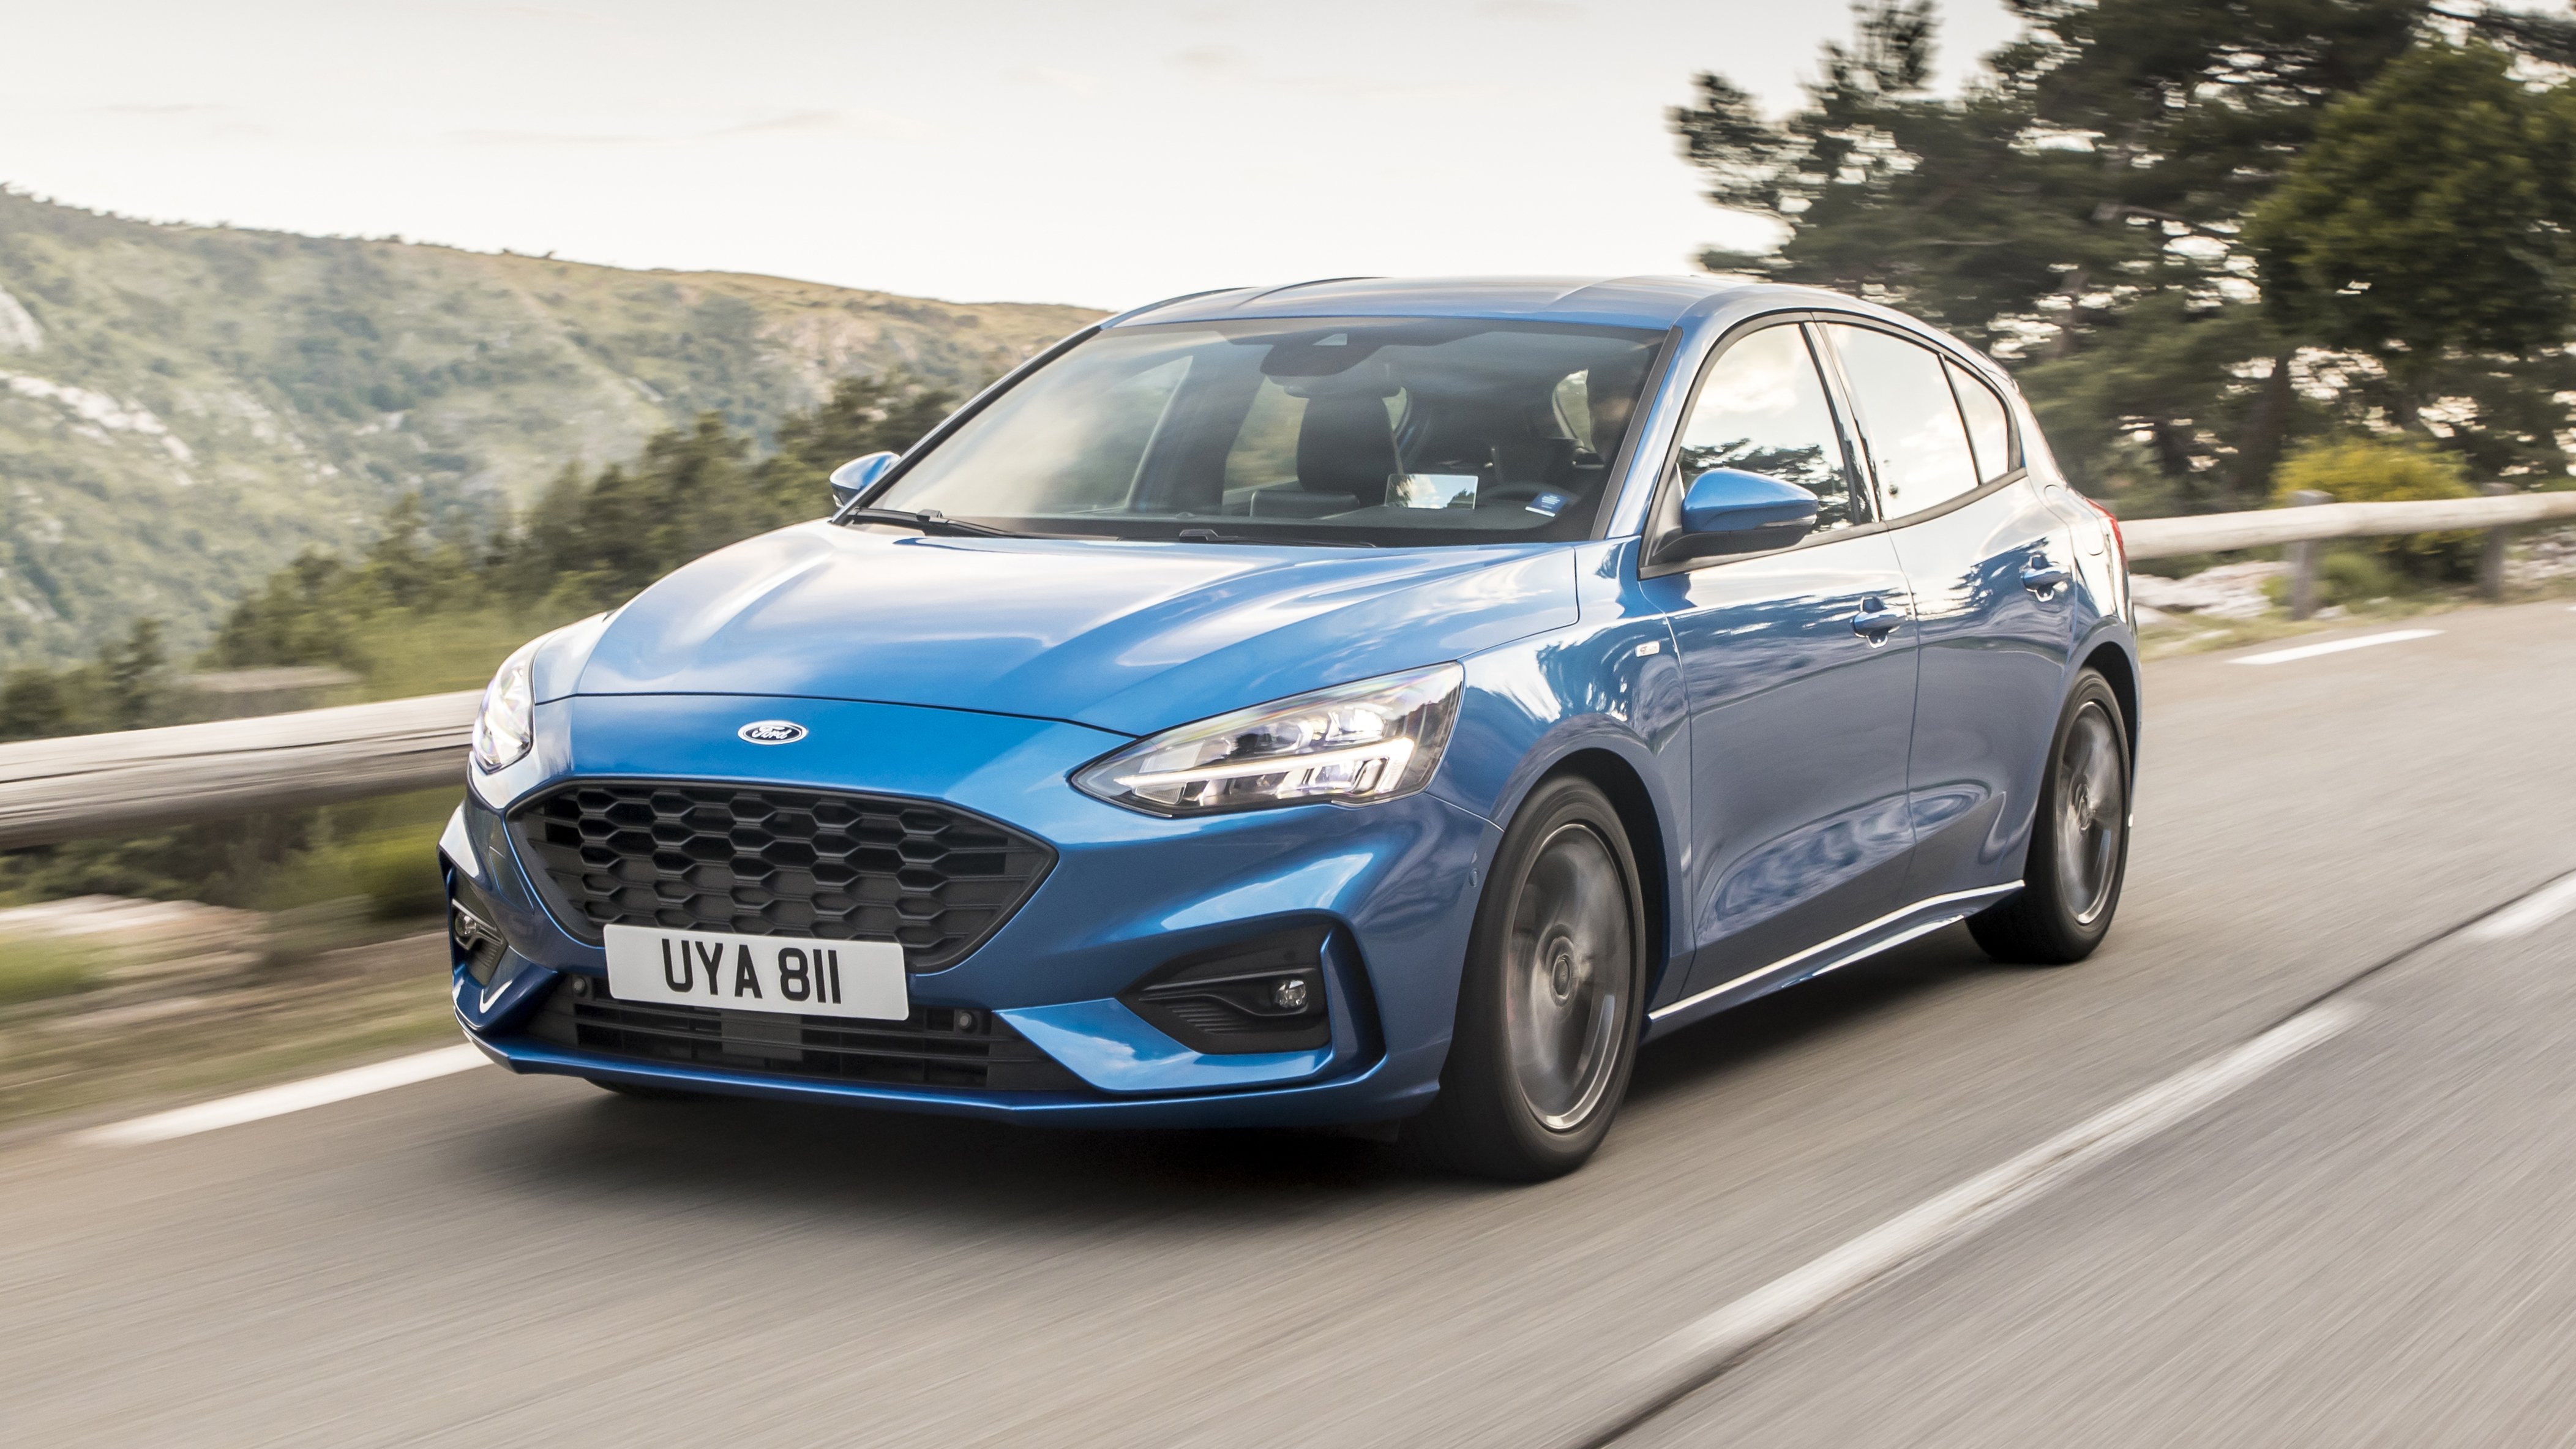 2018 Ford Focus Review | Top Gear